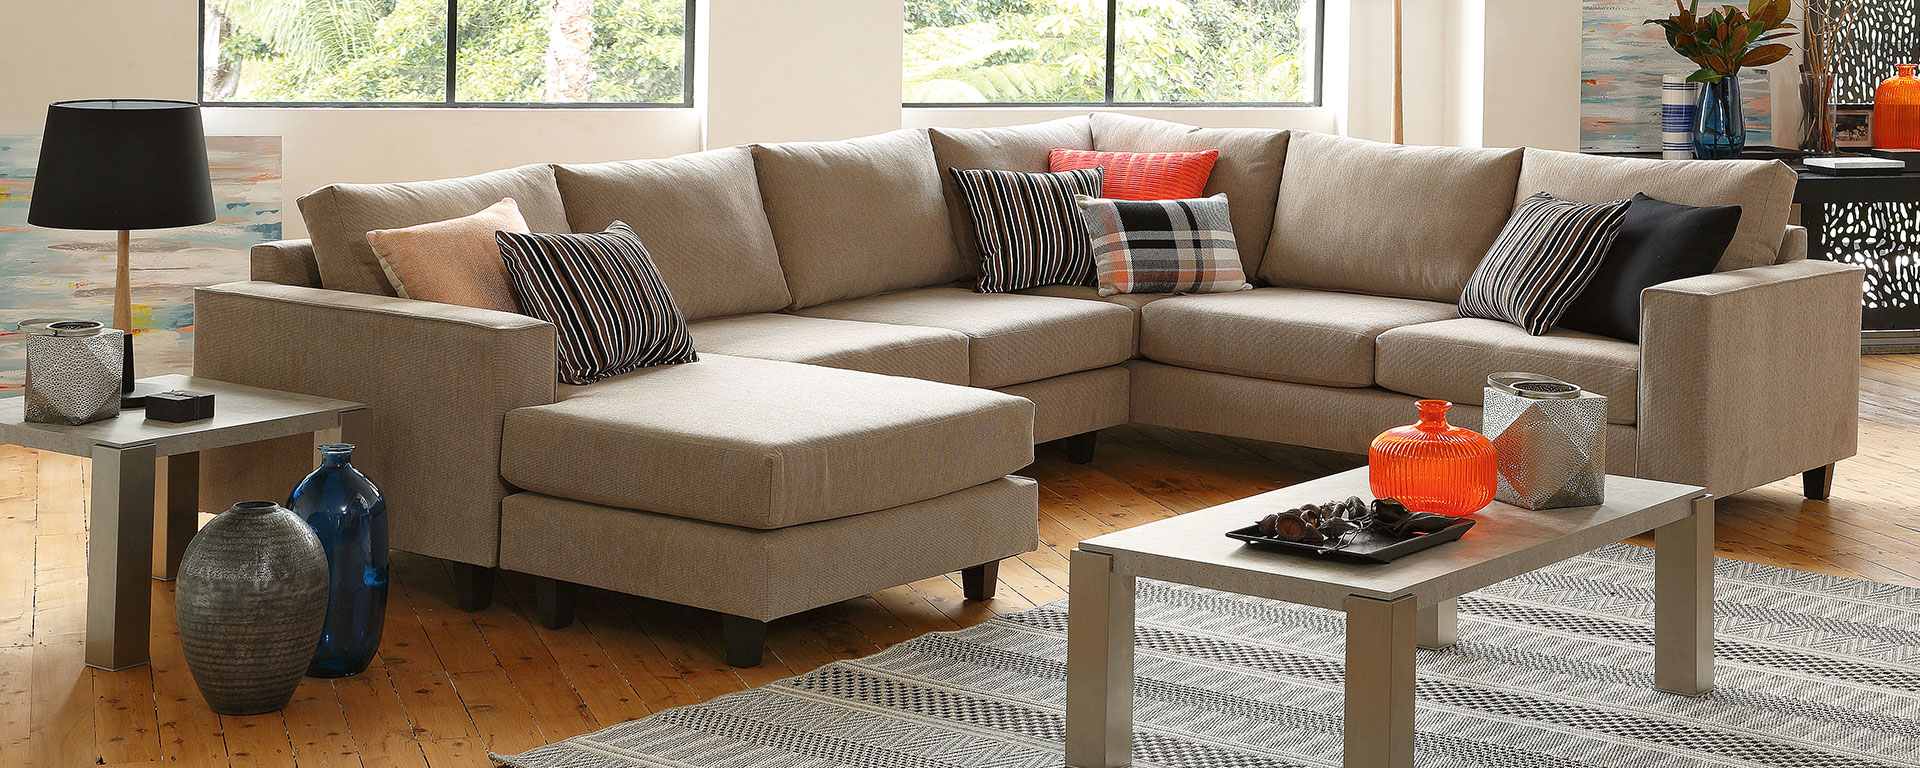 Houston sofa harvey norman for Suite modulare